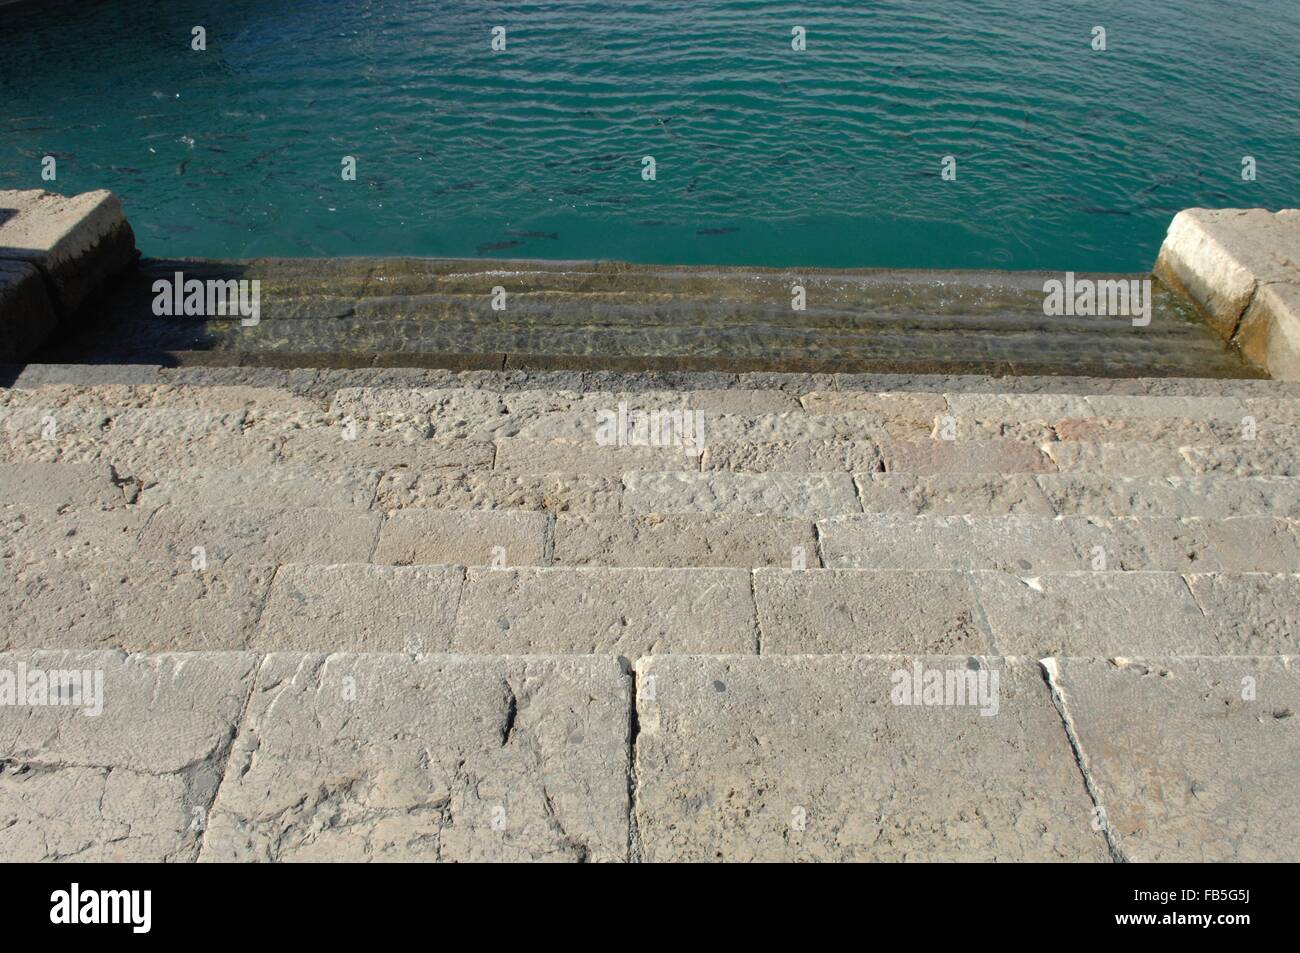 steps going down into the marina water for easy access to boats - Stock Image